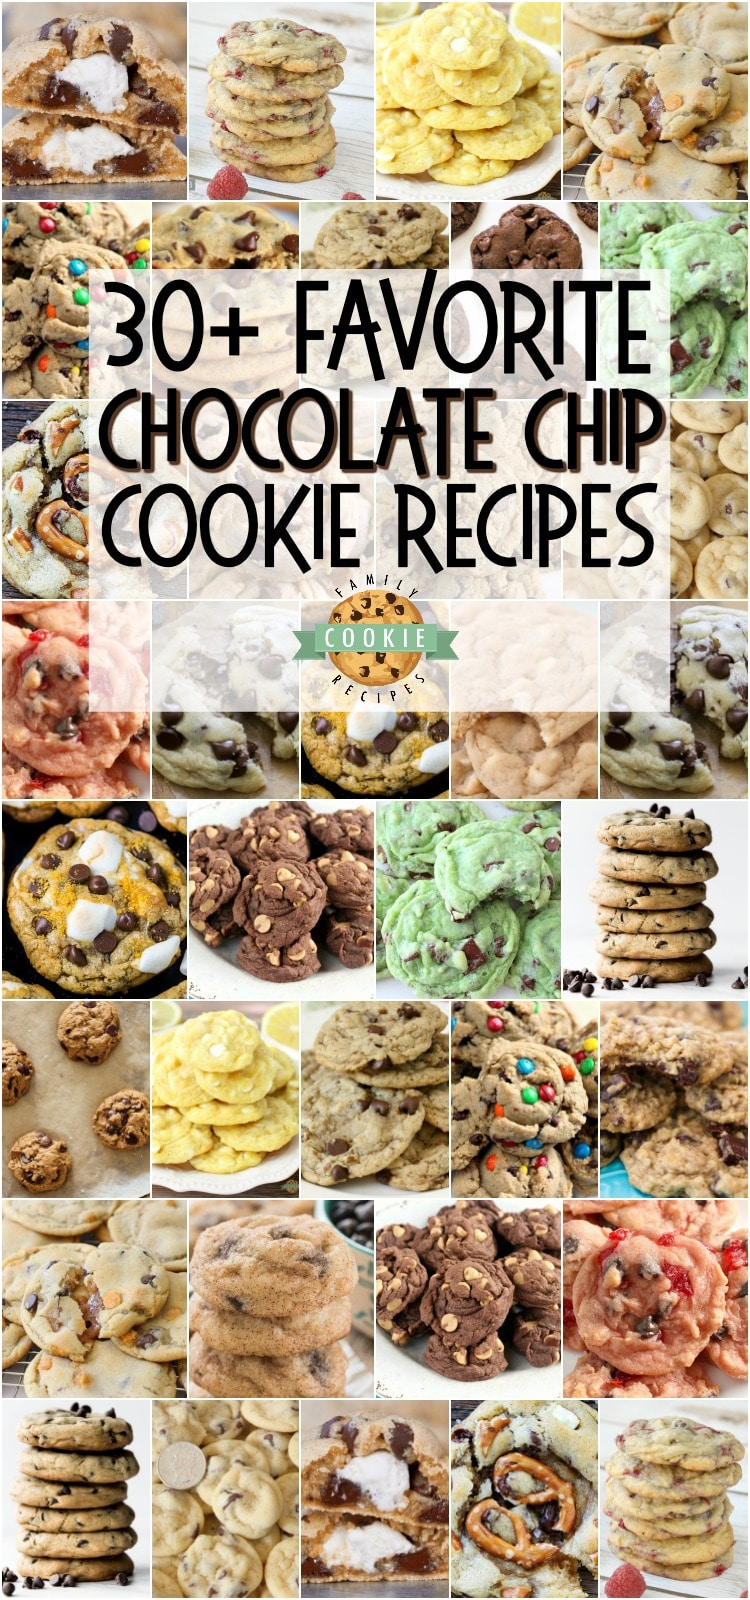 Homemade Chocolate Chip Cookie - everything from Classic Chocolate Chip, to Peanut Butter Chocolate Chip and even to Cherry Chocolate Chip cookies, this collection of best chocolate chip cookie recipes is sure to become a favorite! #cookies #chocolatechip #baking #dessert #homemade #chocolate #recipes from FAMILY COOKIE RECIPES